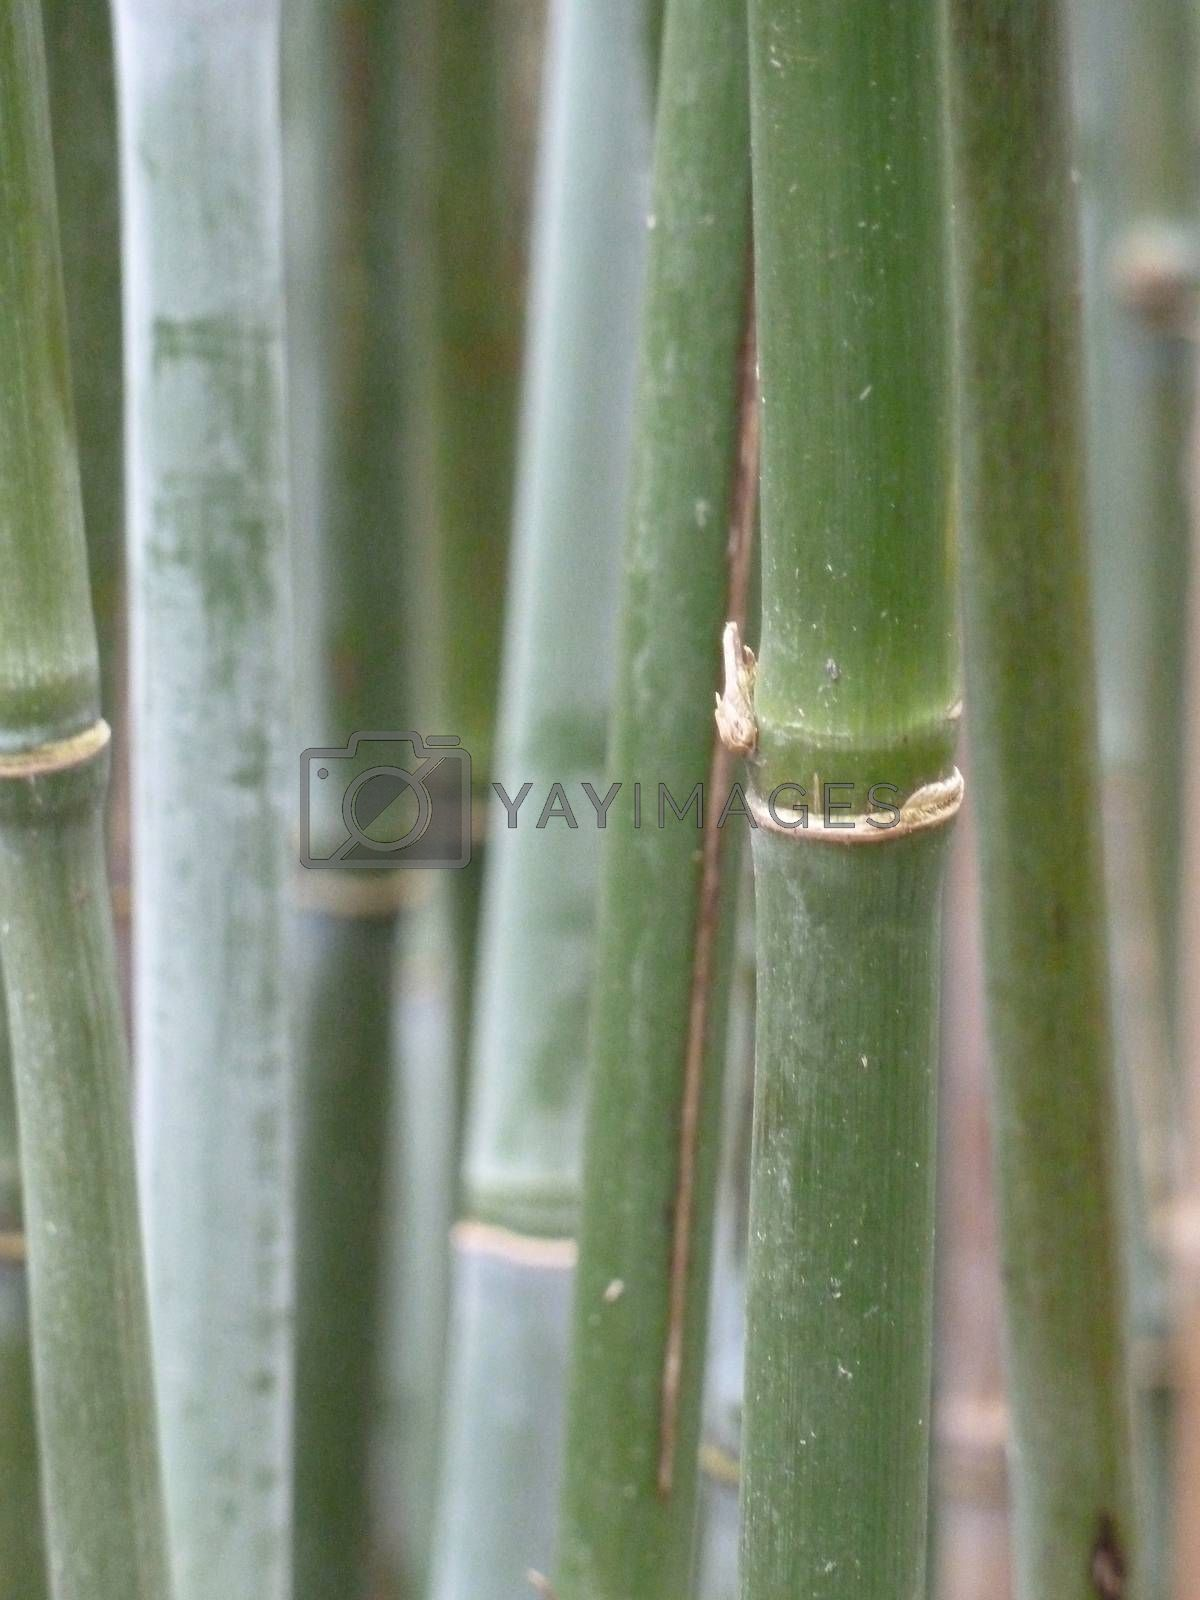 Royalty free image of Green bamboo by gazmoi